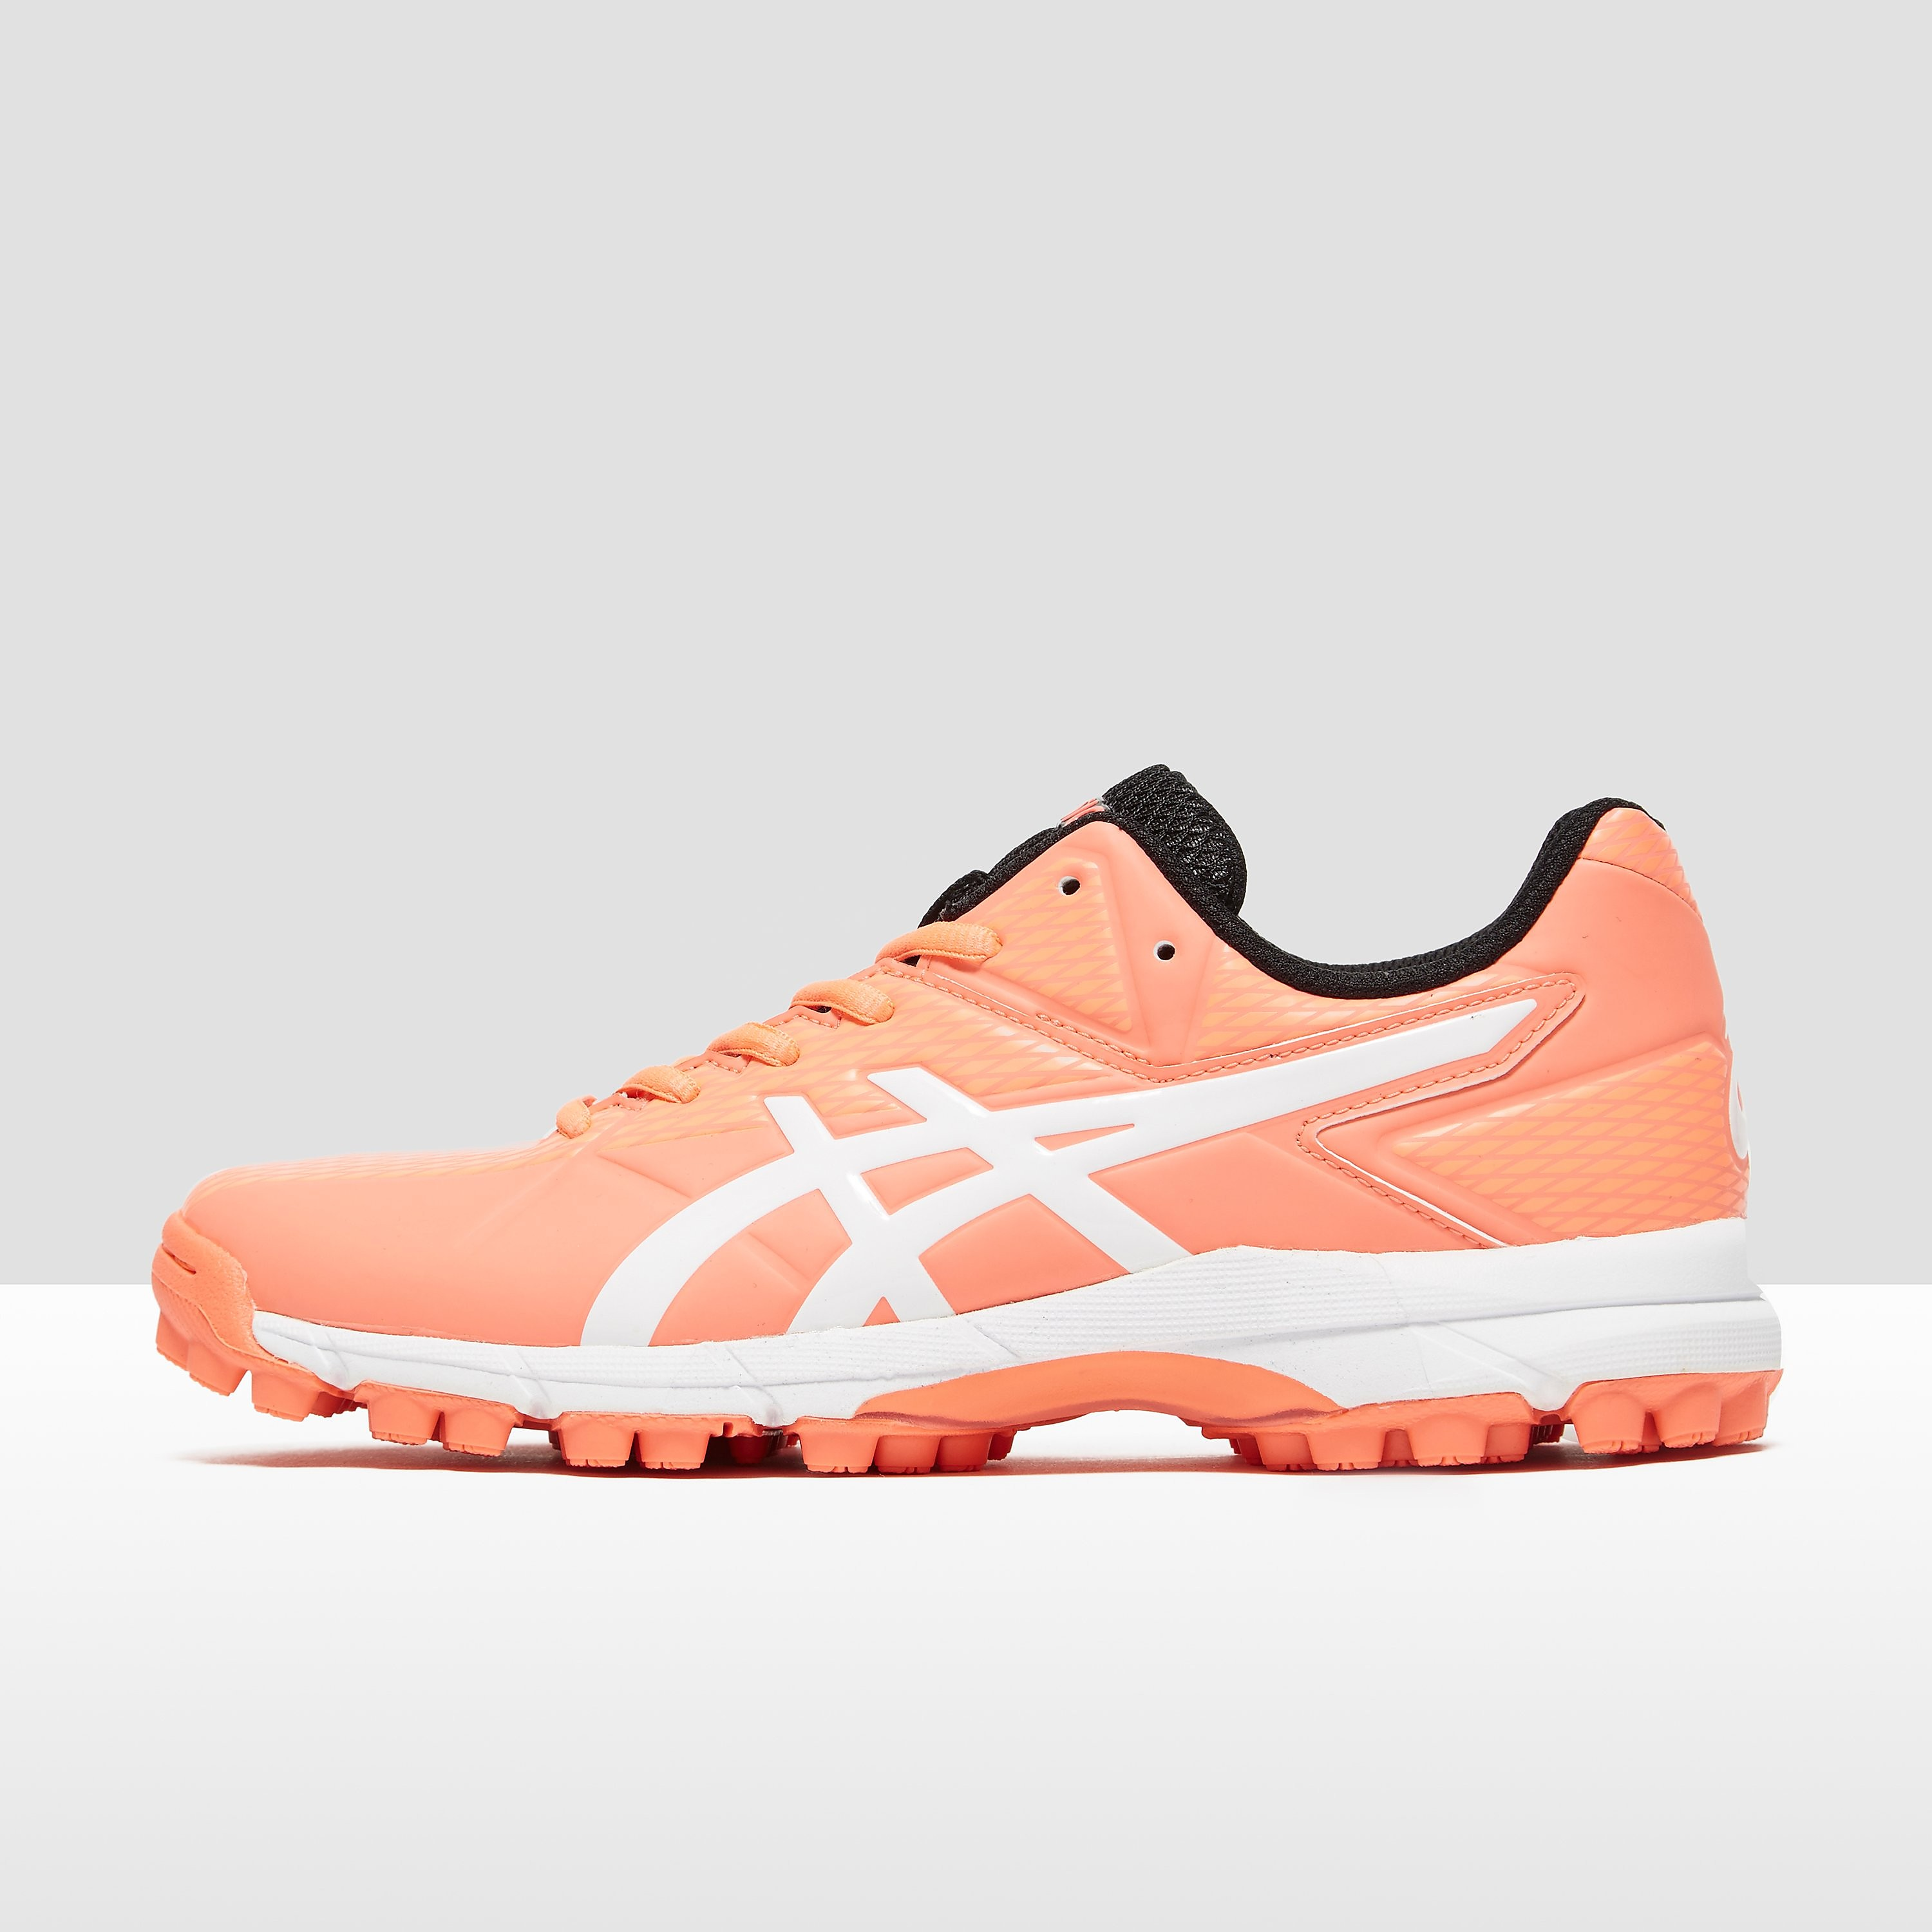 Asics GEL-HOCKEY NEO 4 WOMEN